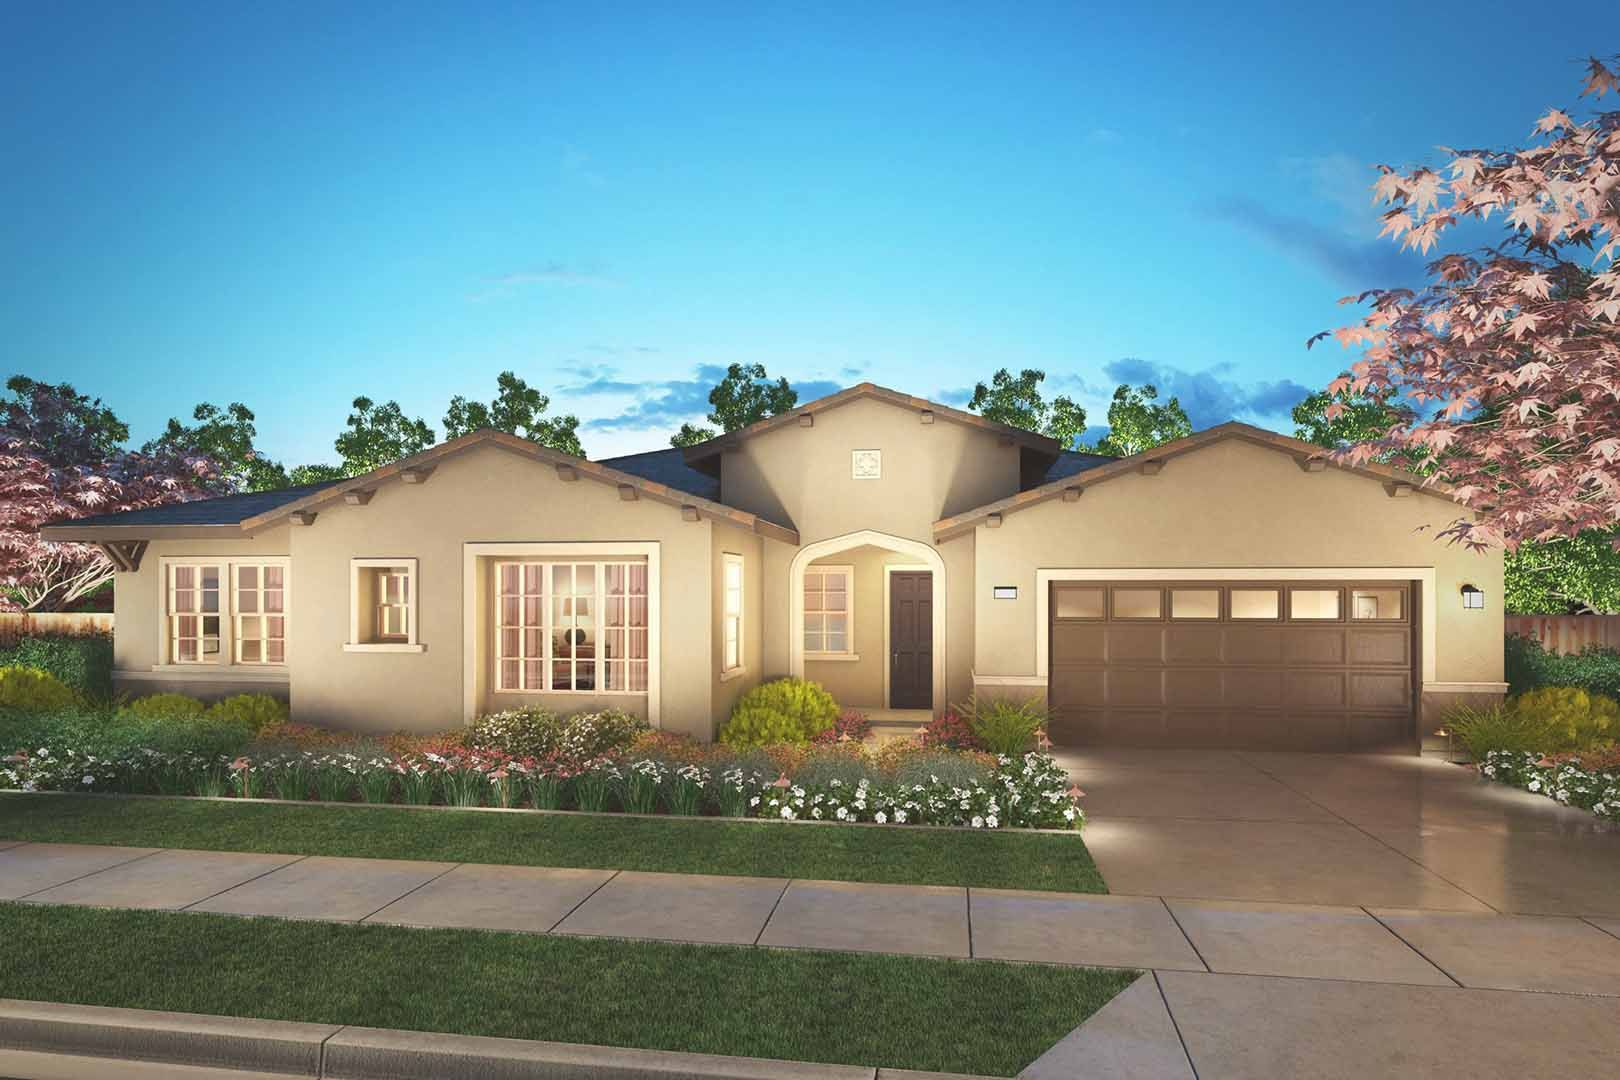 Marquette at barrington new homes in brentwood ca by tri for Barrington home builders